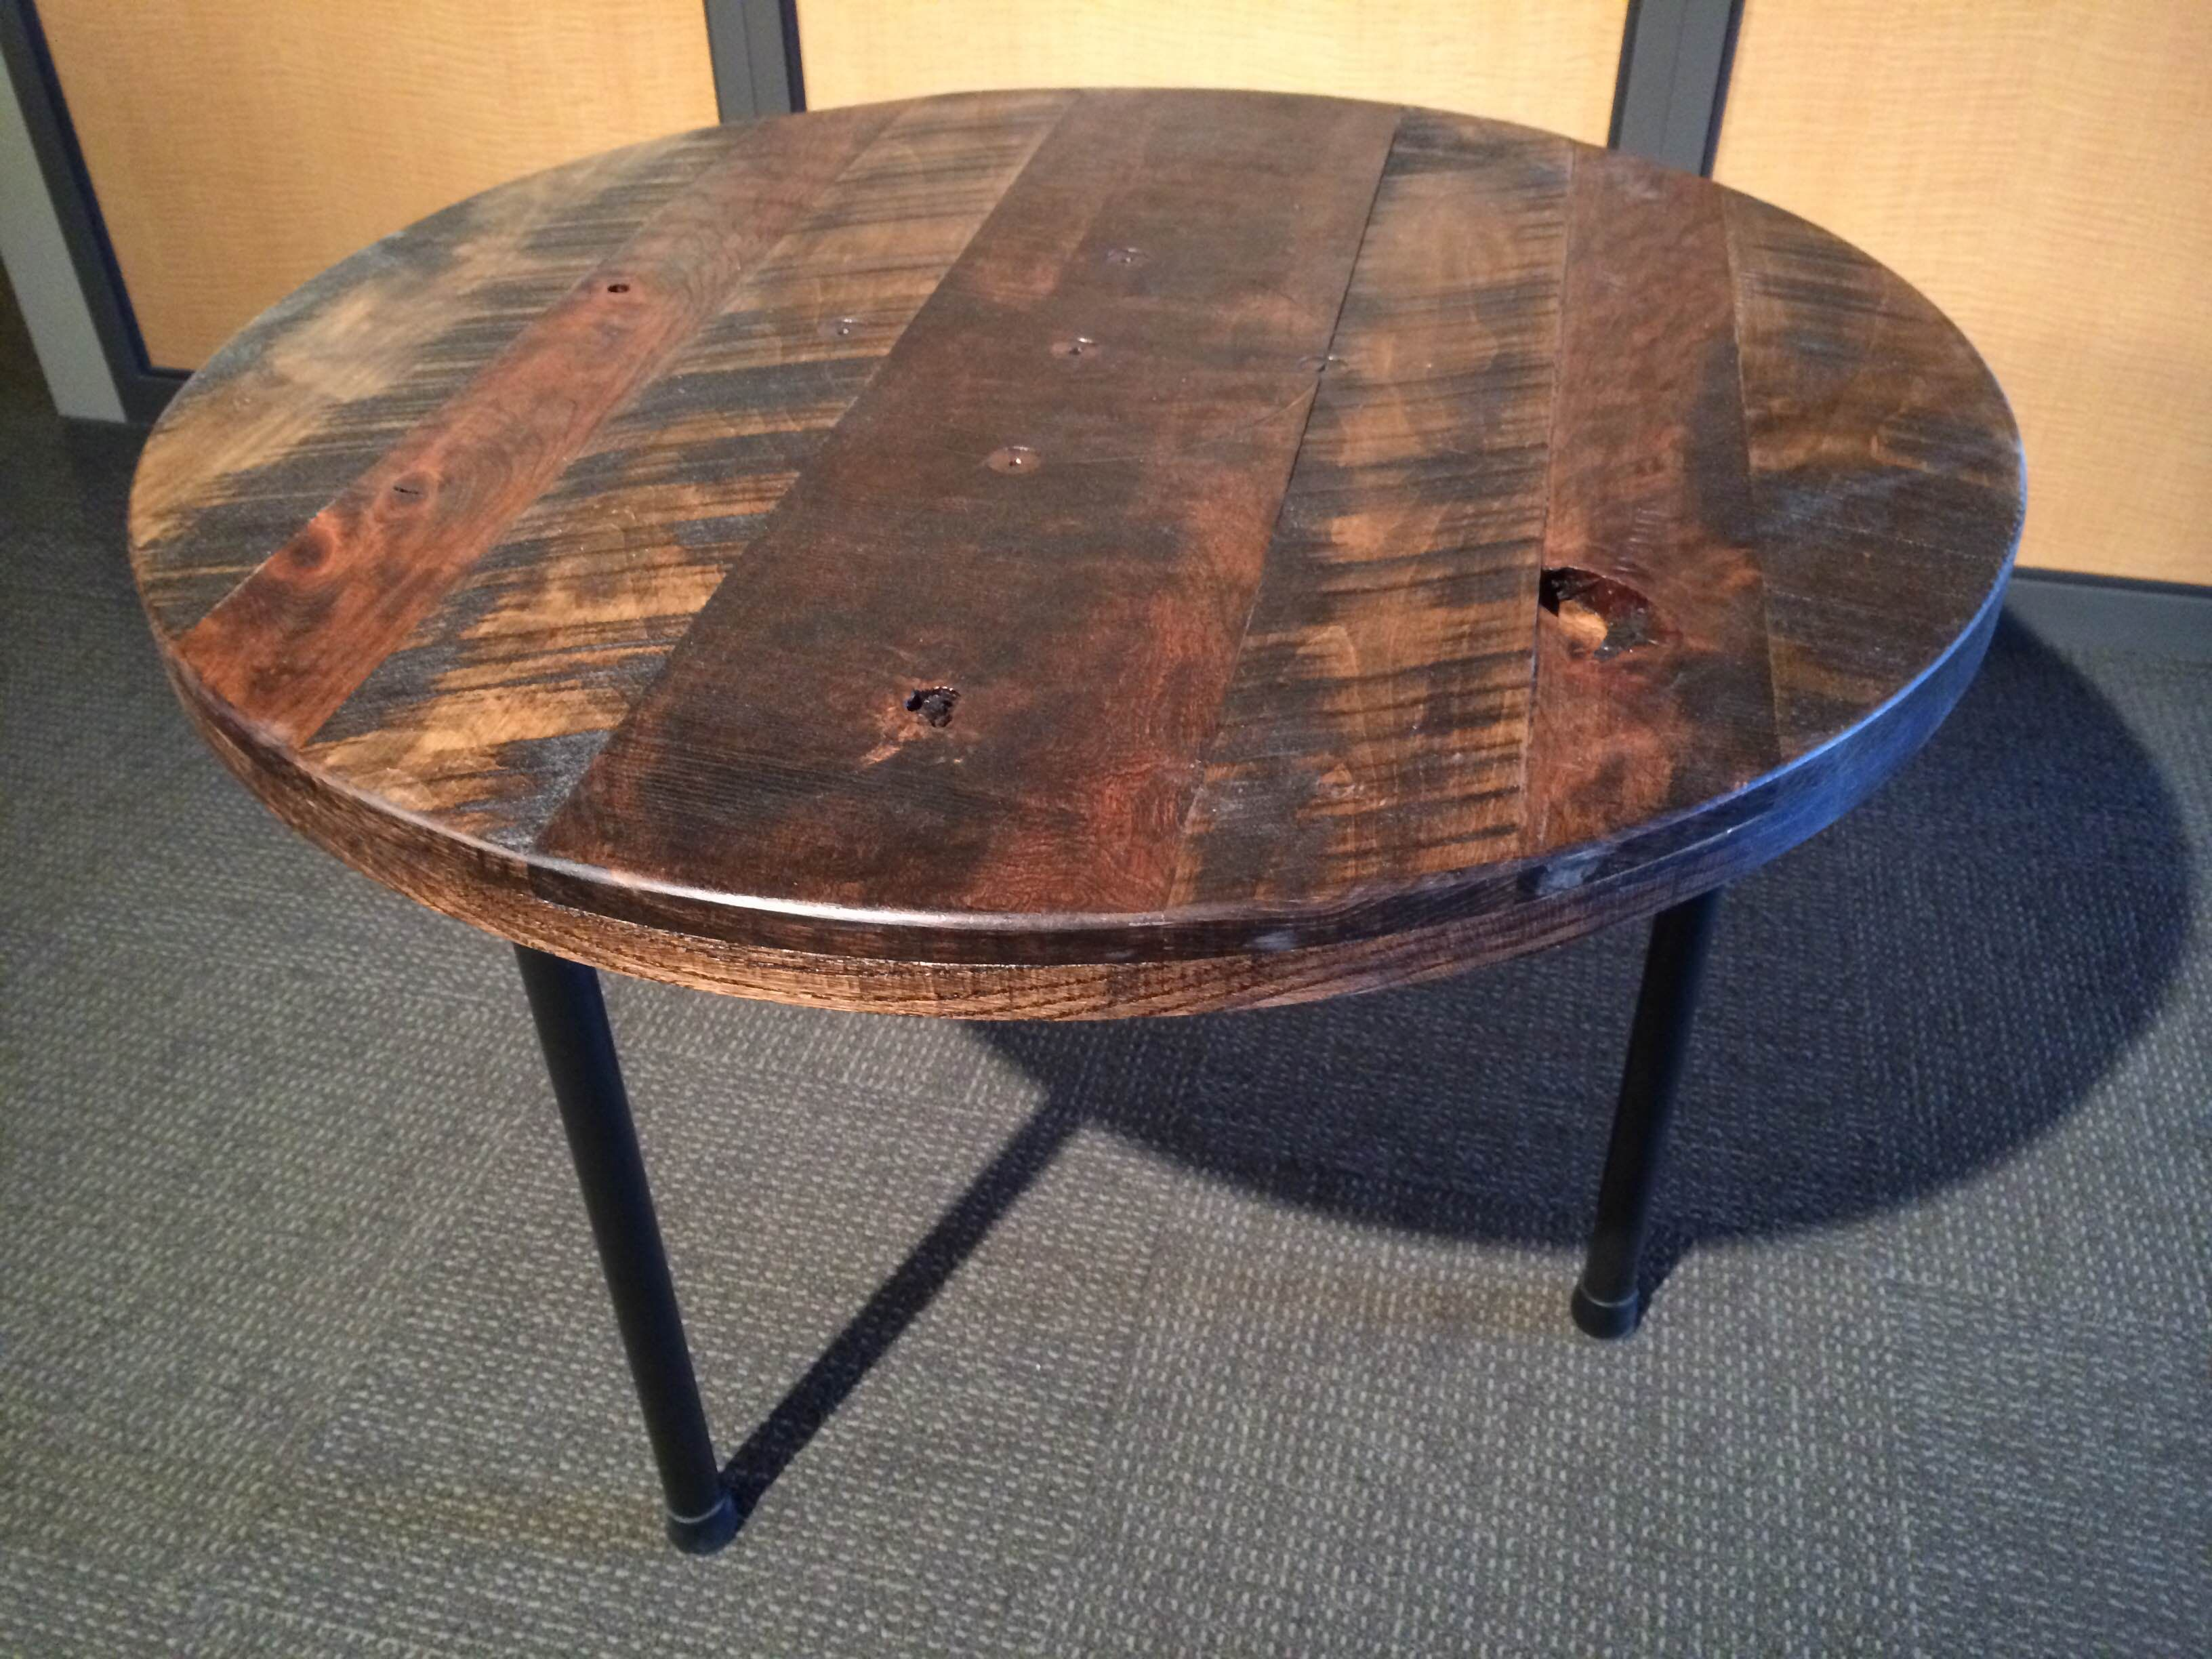 Coffee Table Crafted By Purposeful Design.